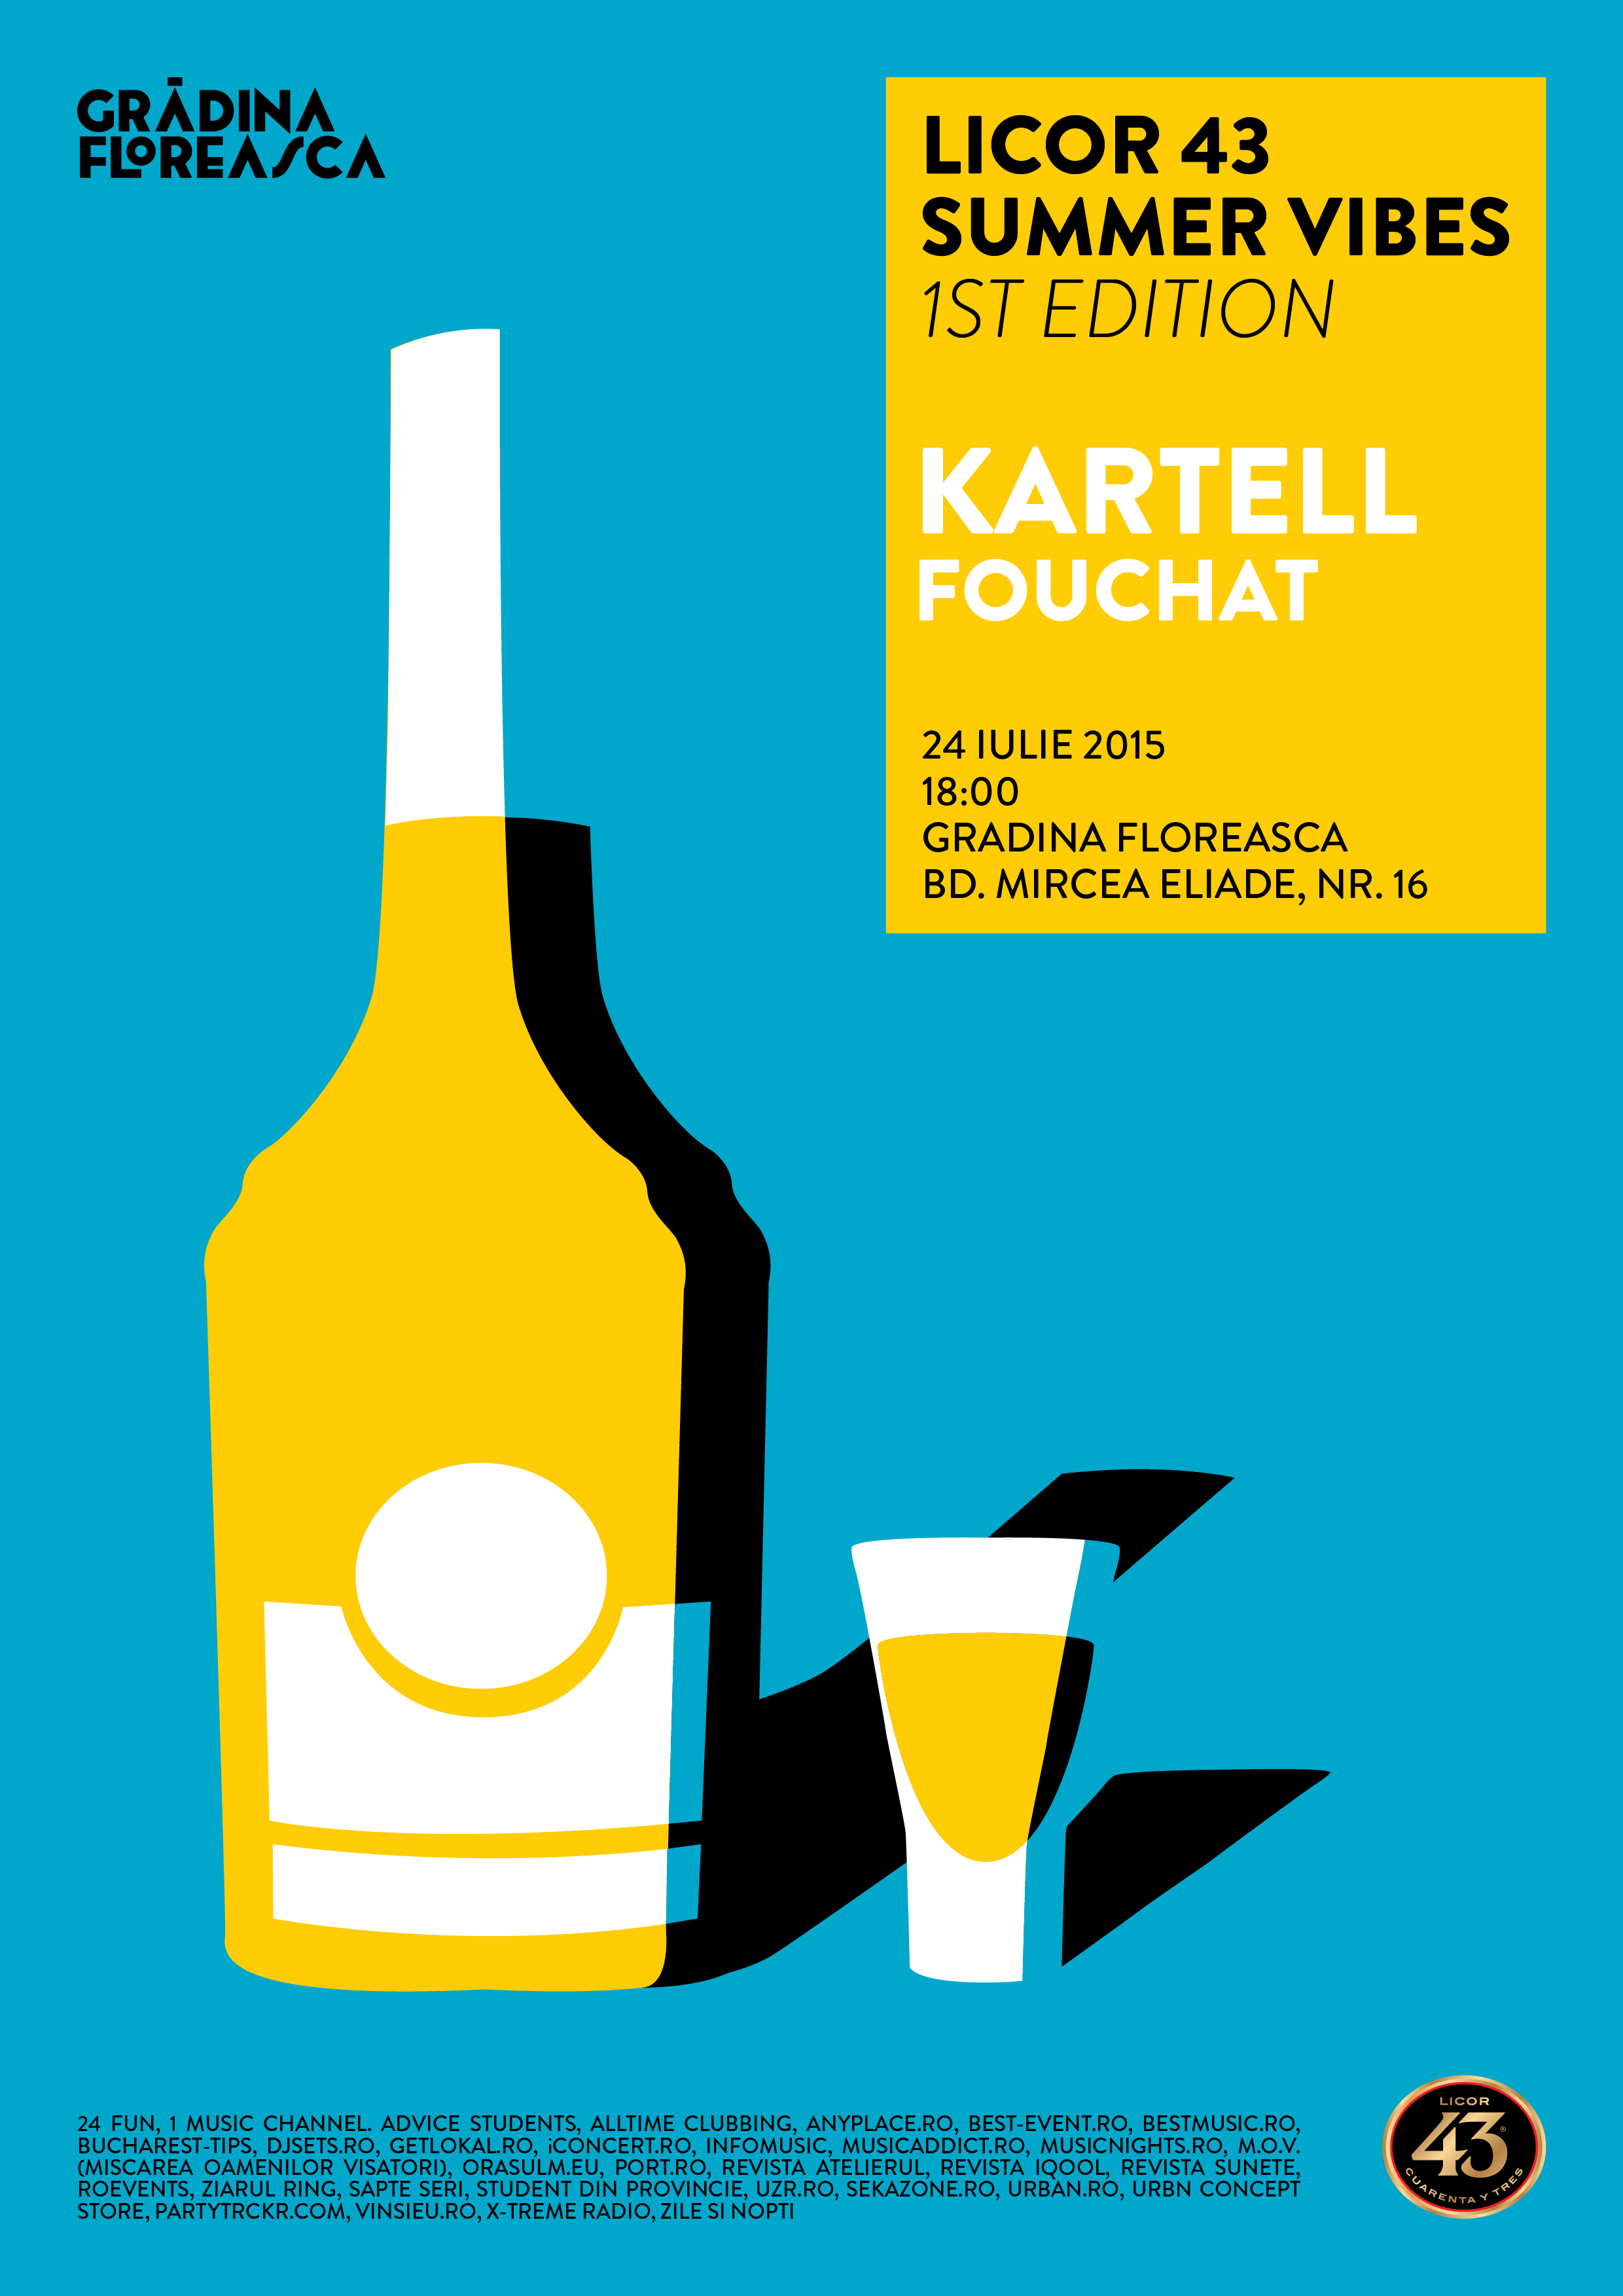 Licor 43 Summer Vibes 1st Edition- Kartell (1)